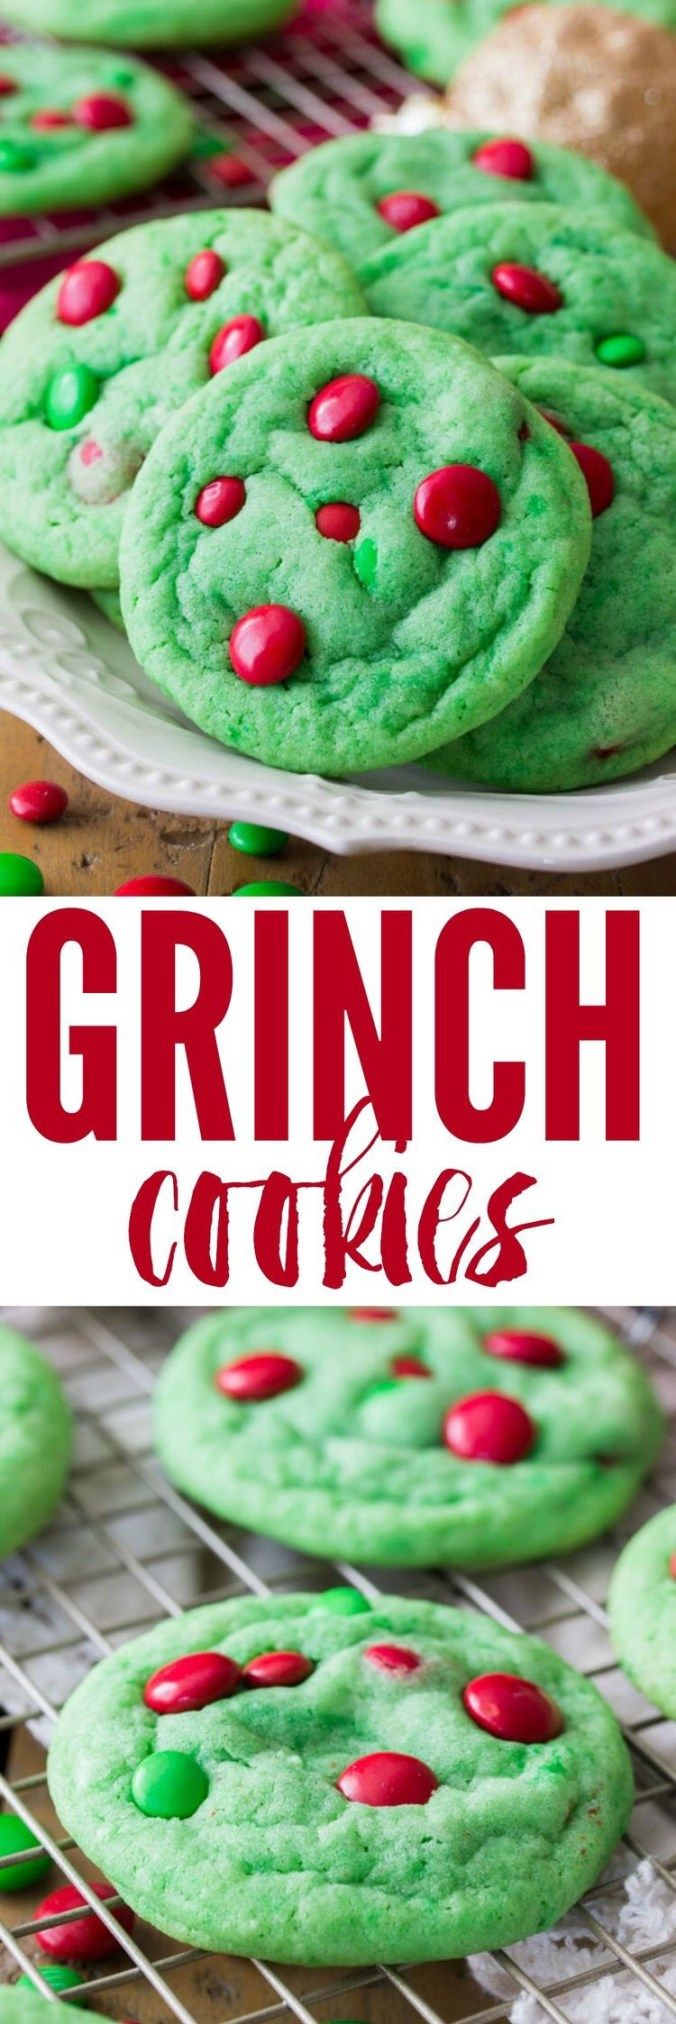 35 Christmas Cookie Recipes to Make for the Holidays